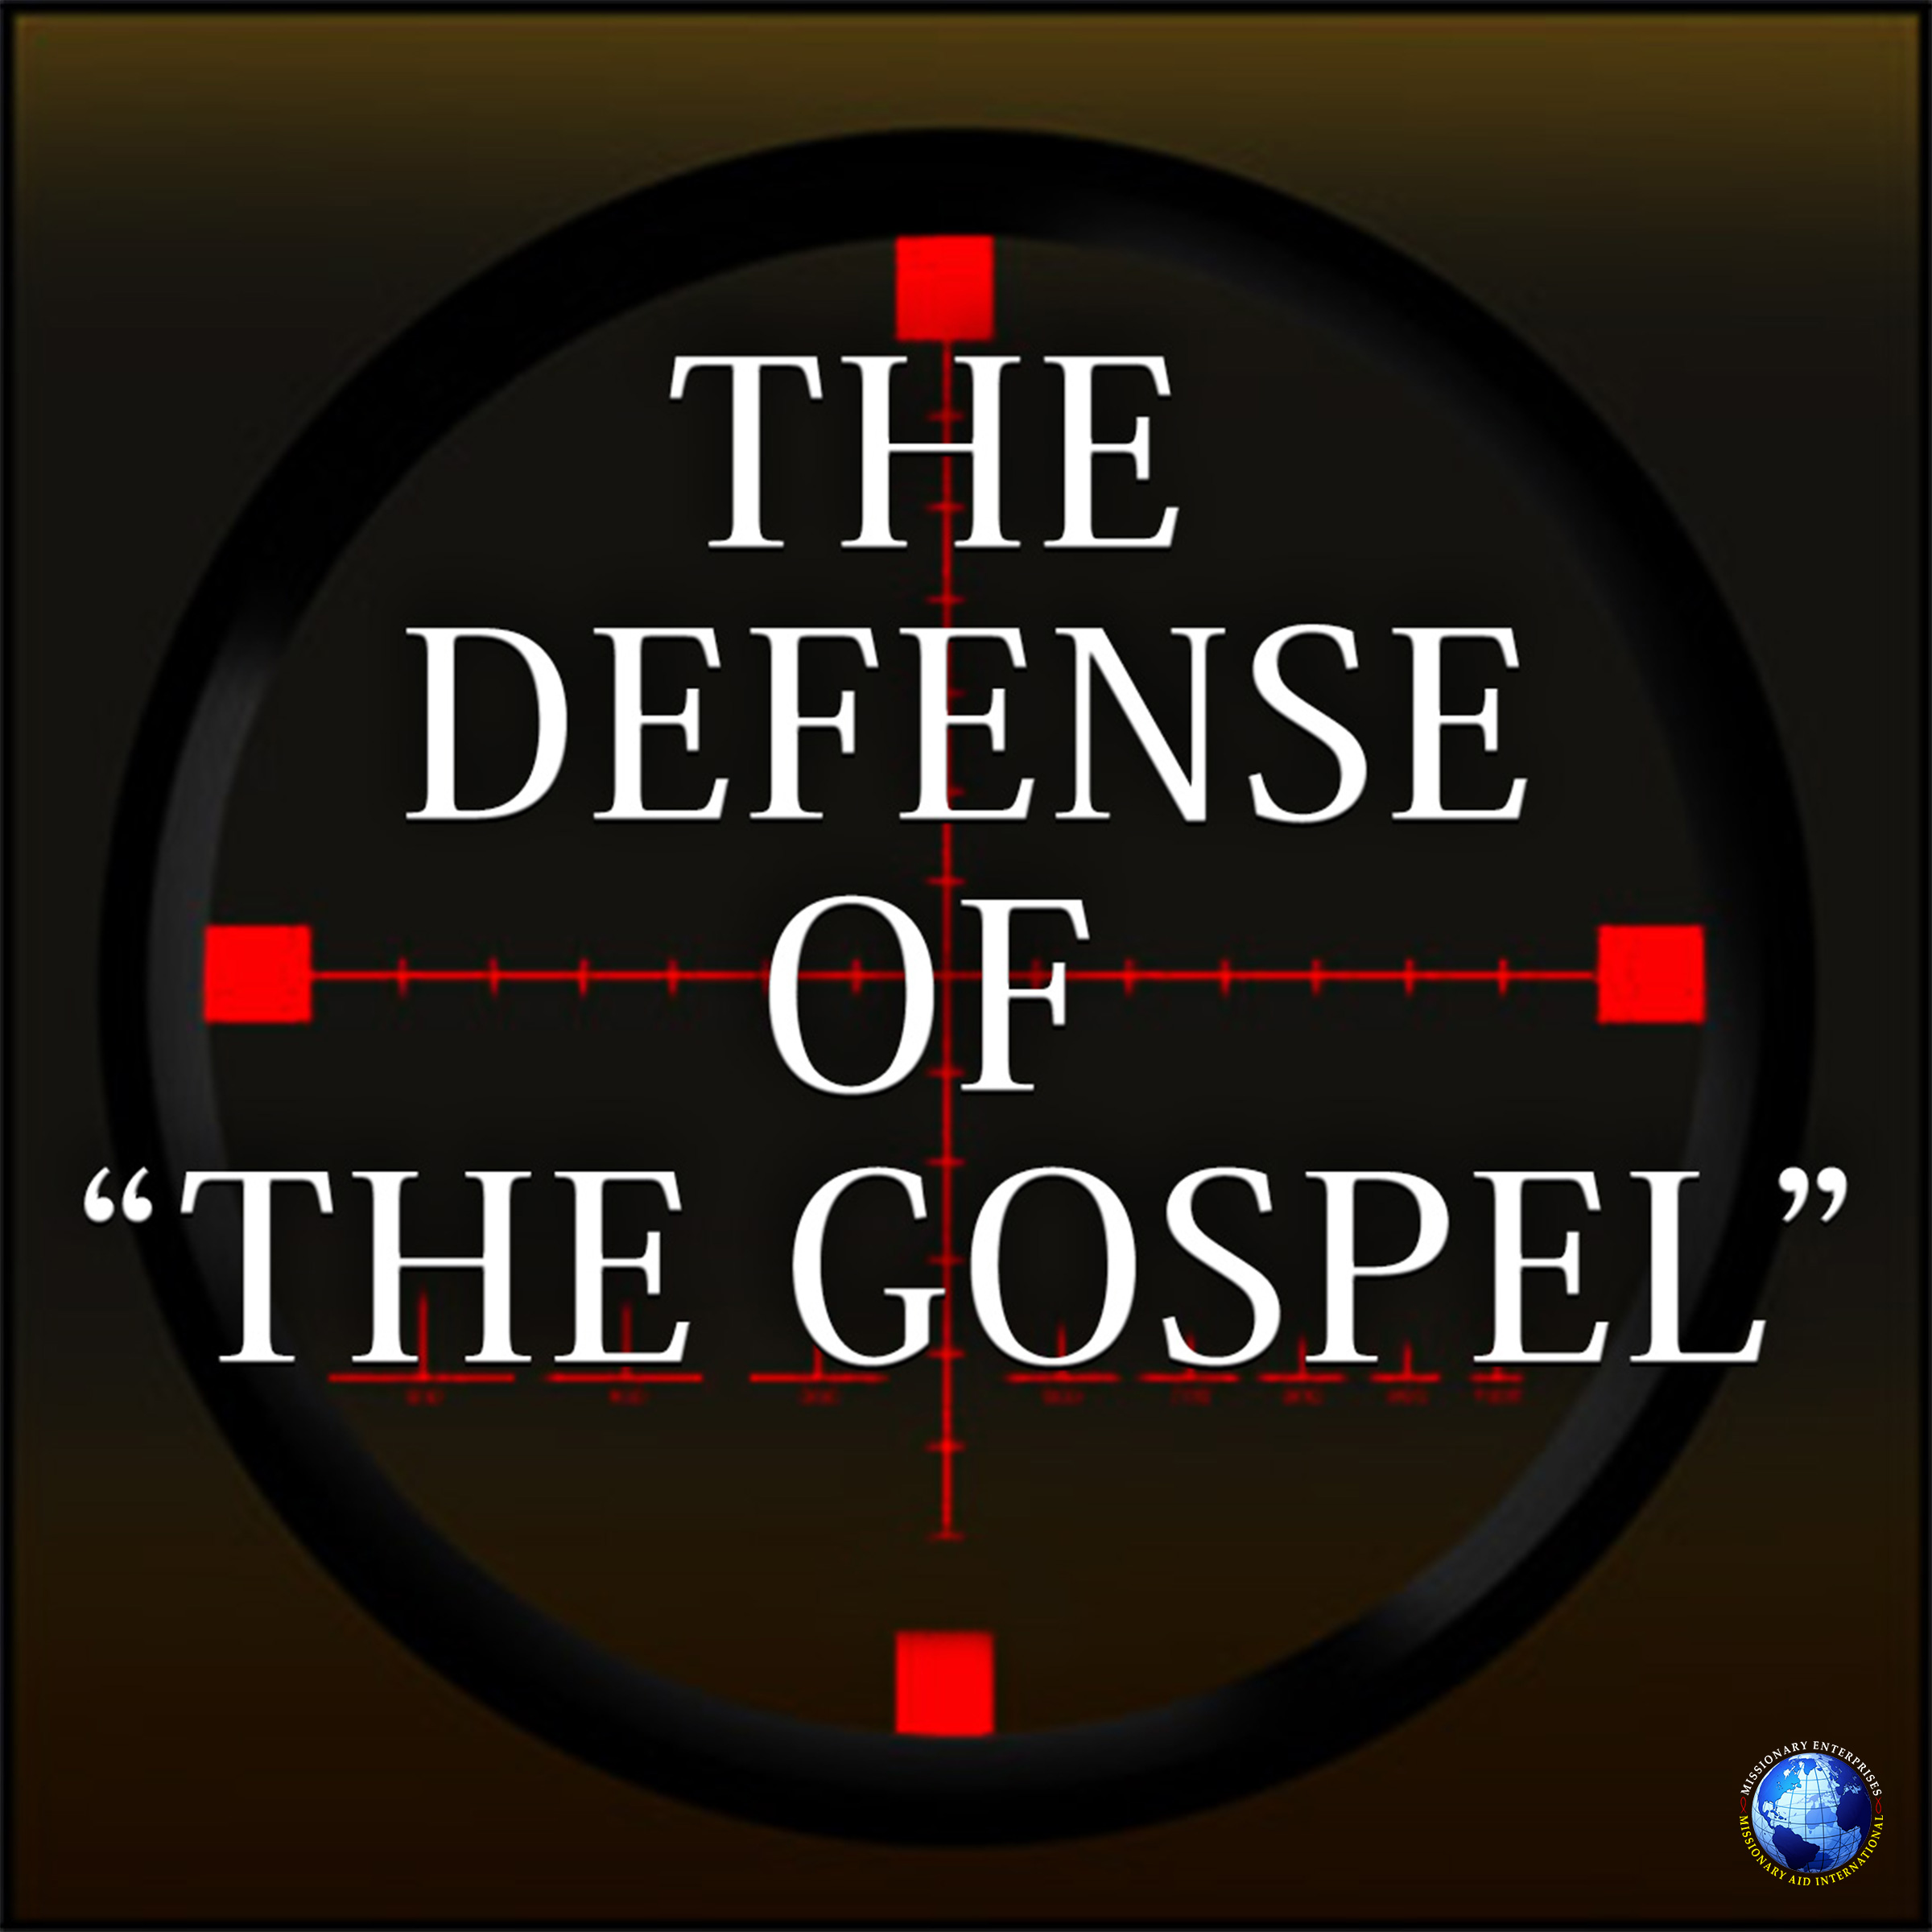 The Defense of The Gospel